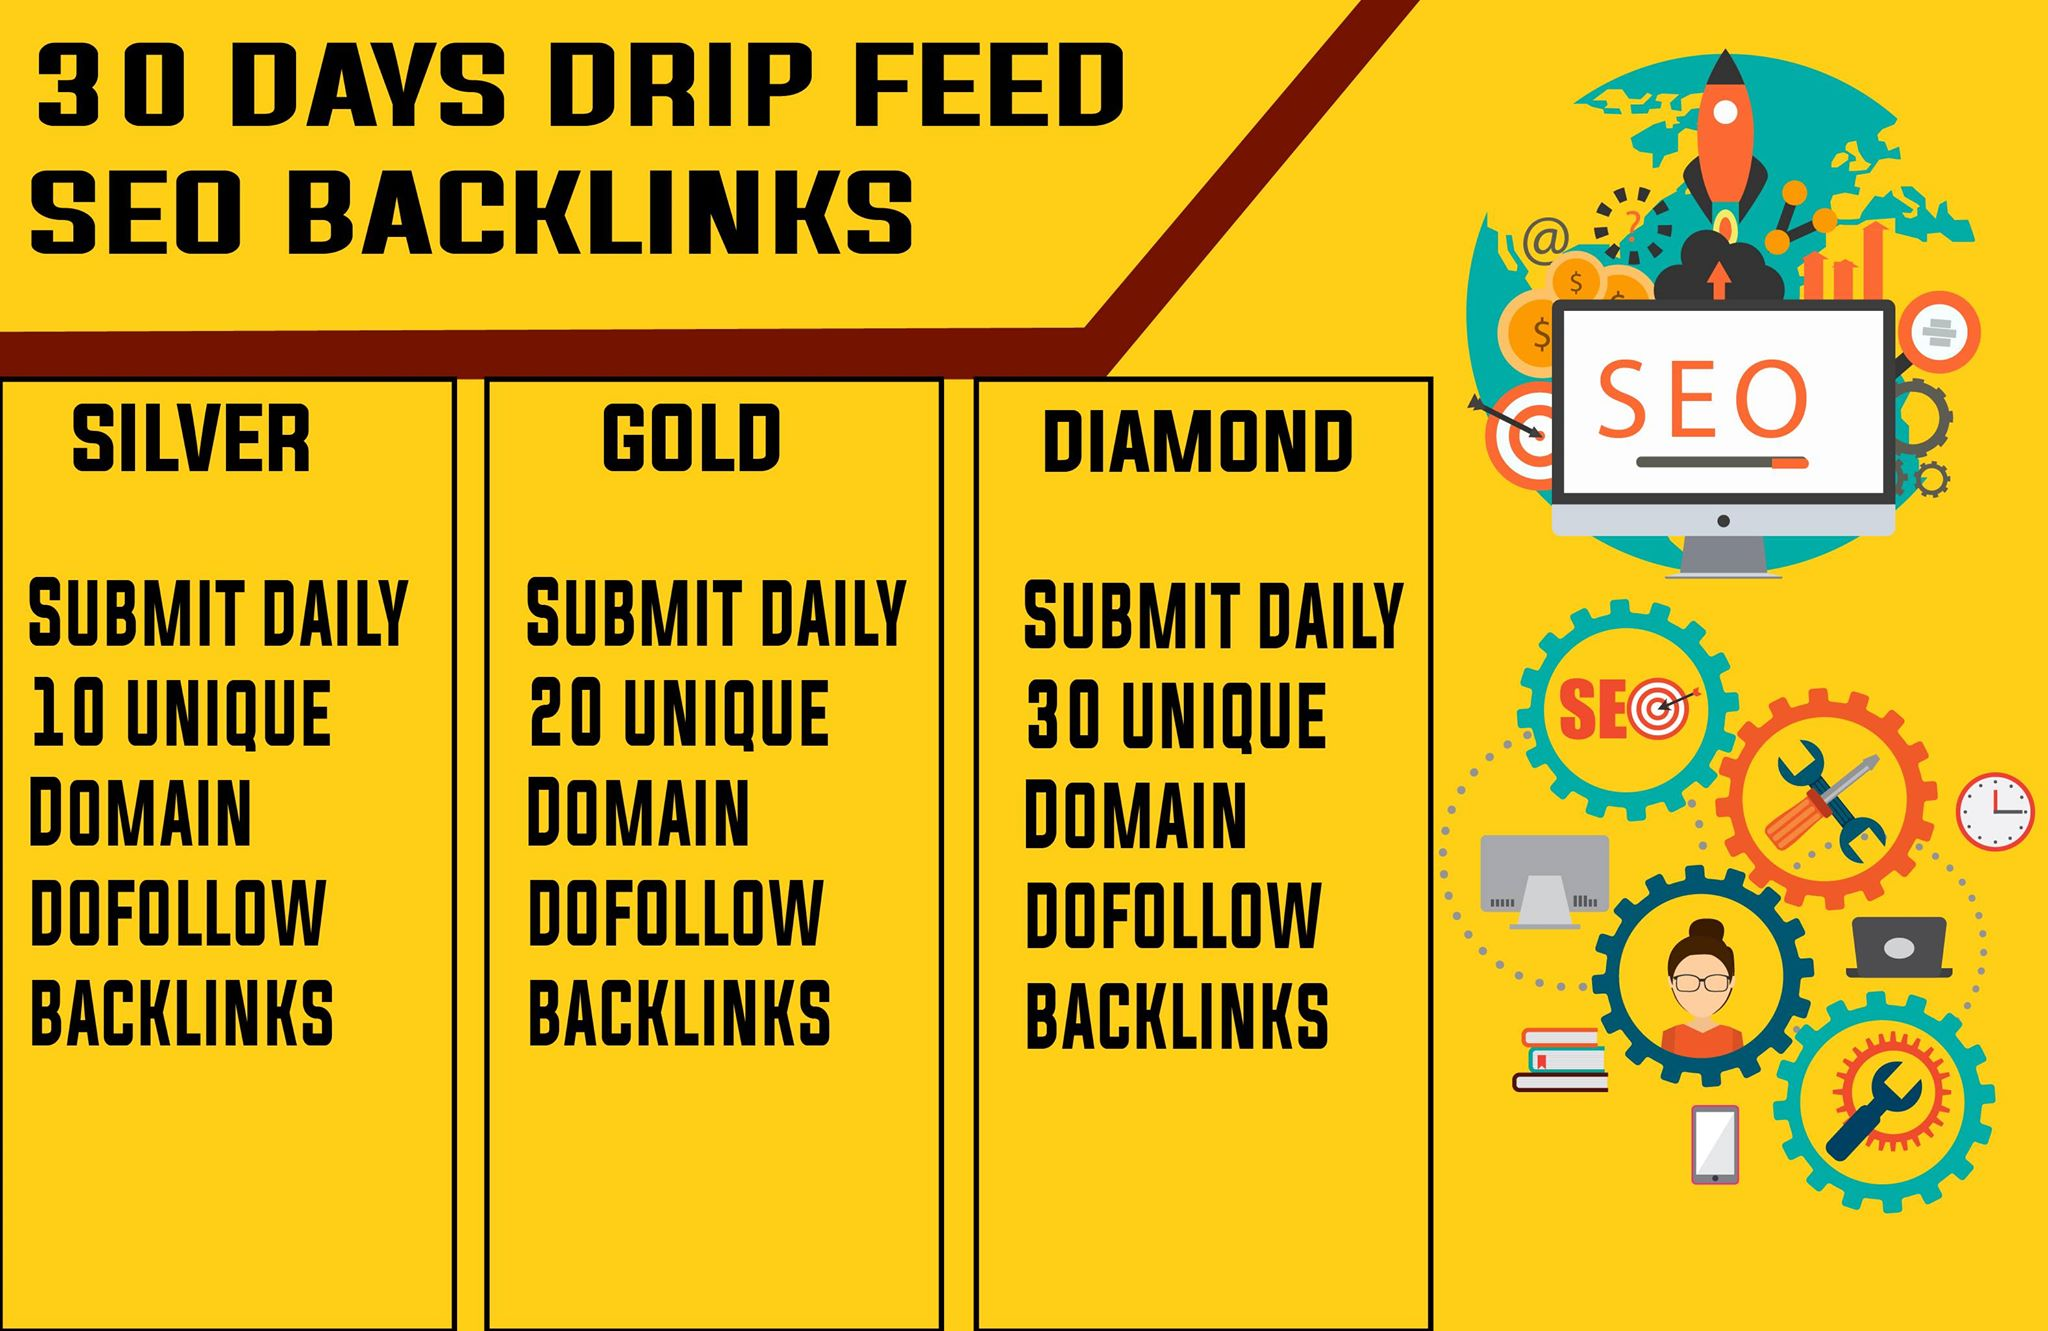 provide seo blog comments service in daily drip feed with dofollow backlinks